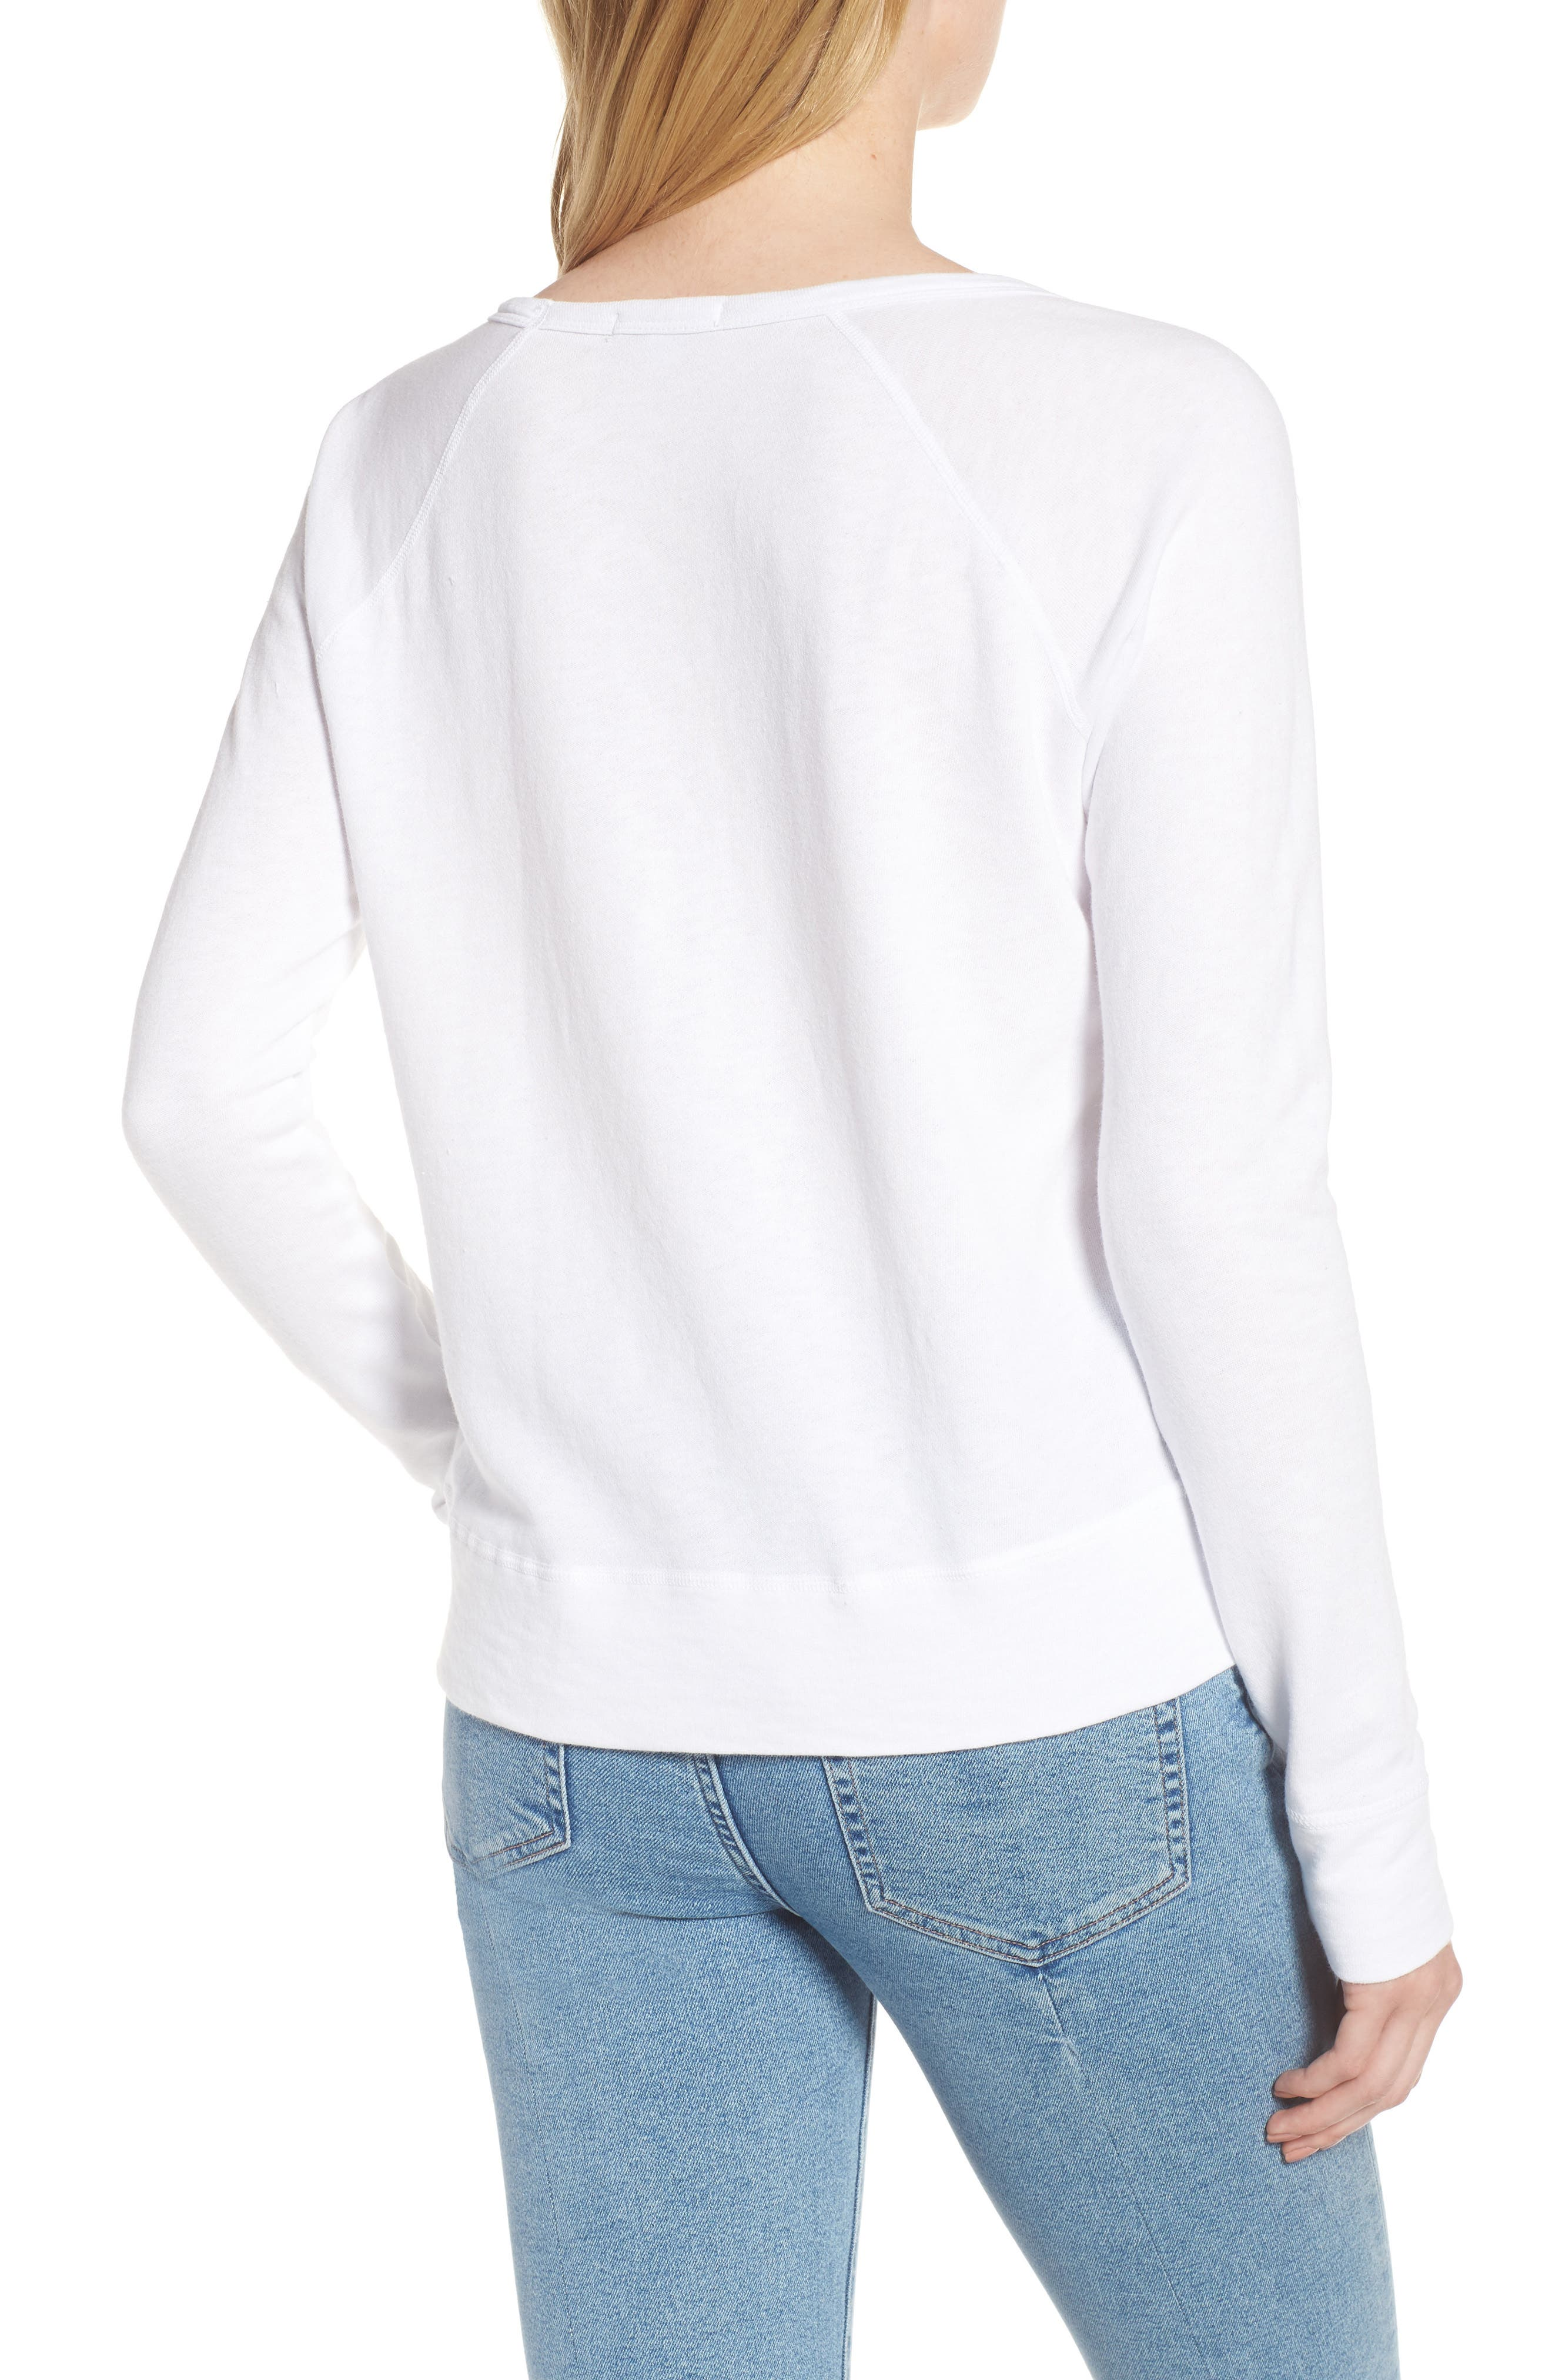 JAMES PERSE,                             Classic Raglan Sweatshirt,                             Alternate thumbnail 2, color,                             100